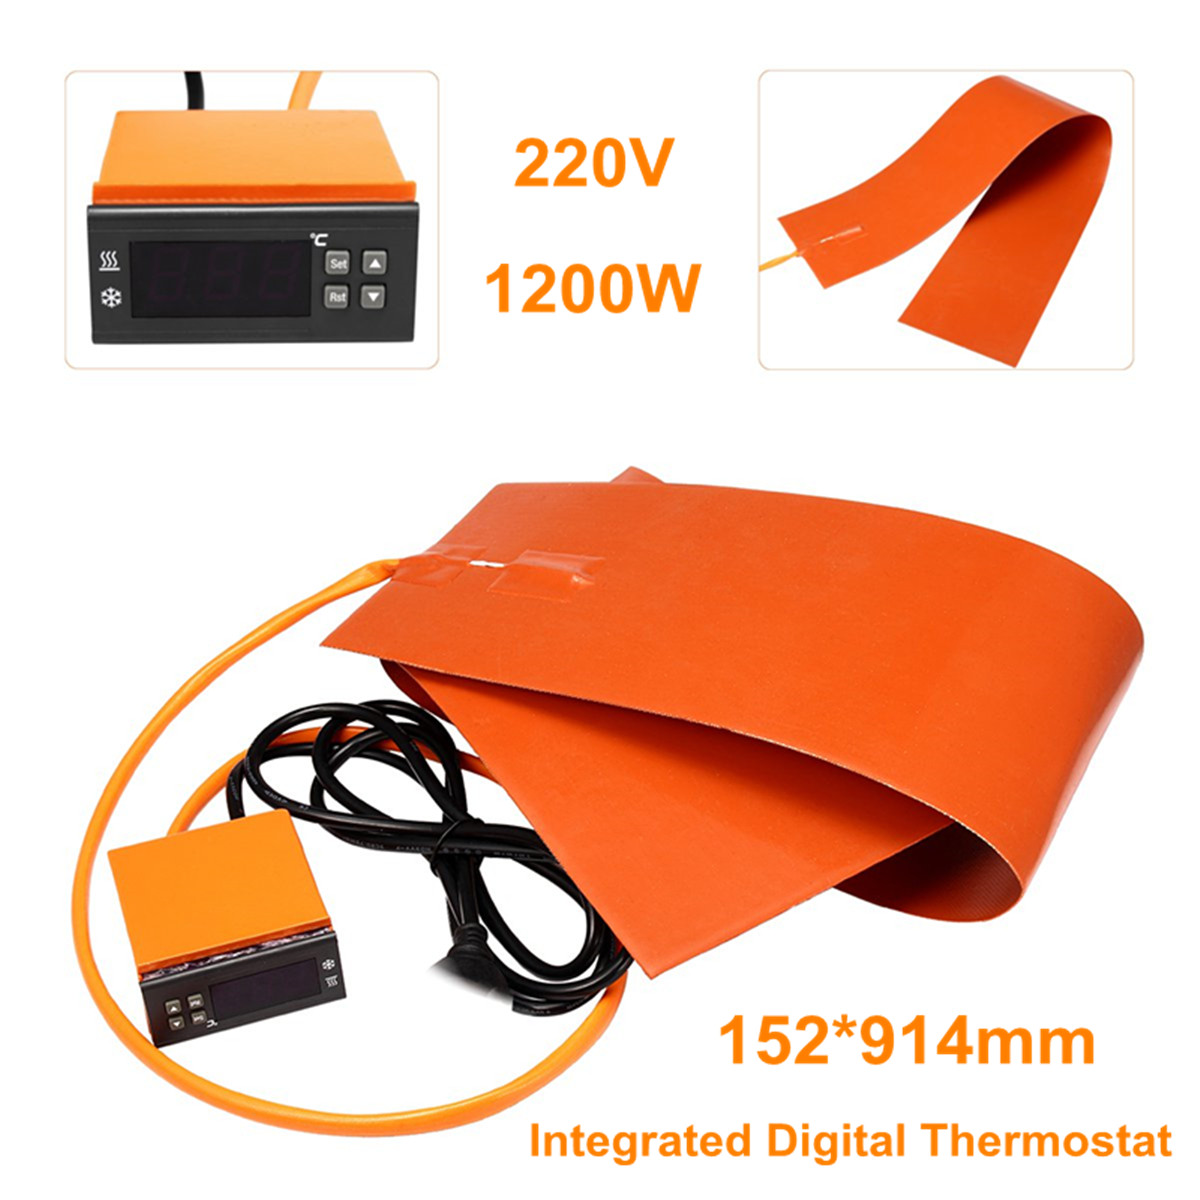 1200W 220V Guitar Side Bending Silicone Heat Blanket Integrated Digital Thermostat Controller Guitar Parts Accessories Orange|Guitar Parts & Accessories| - AliExpress